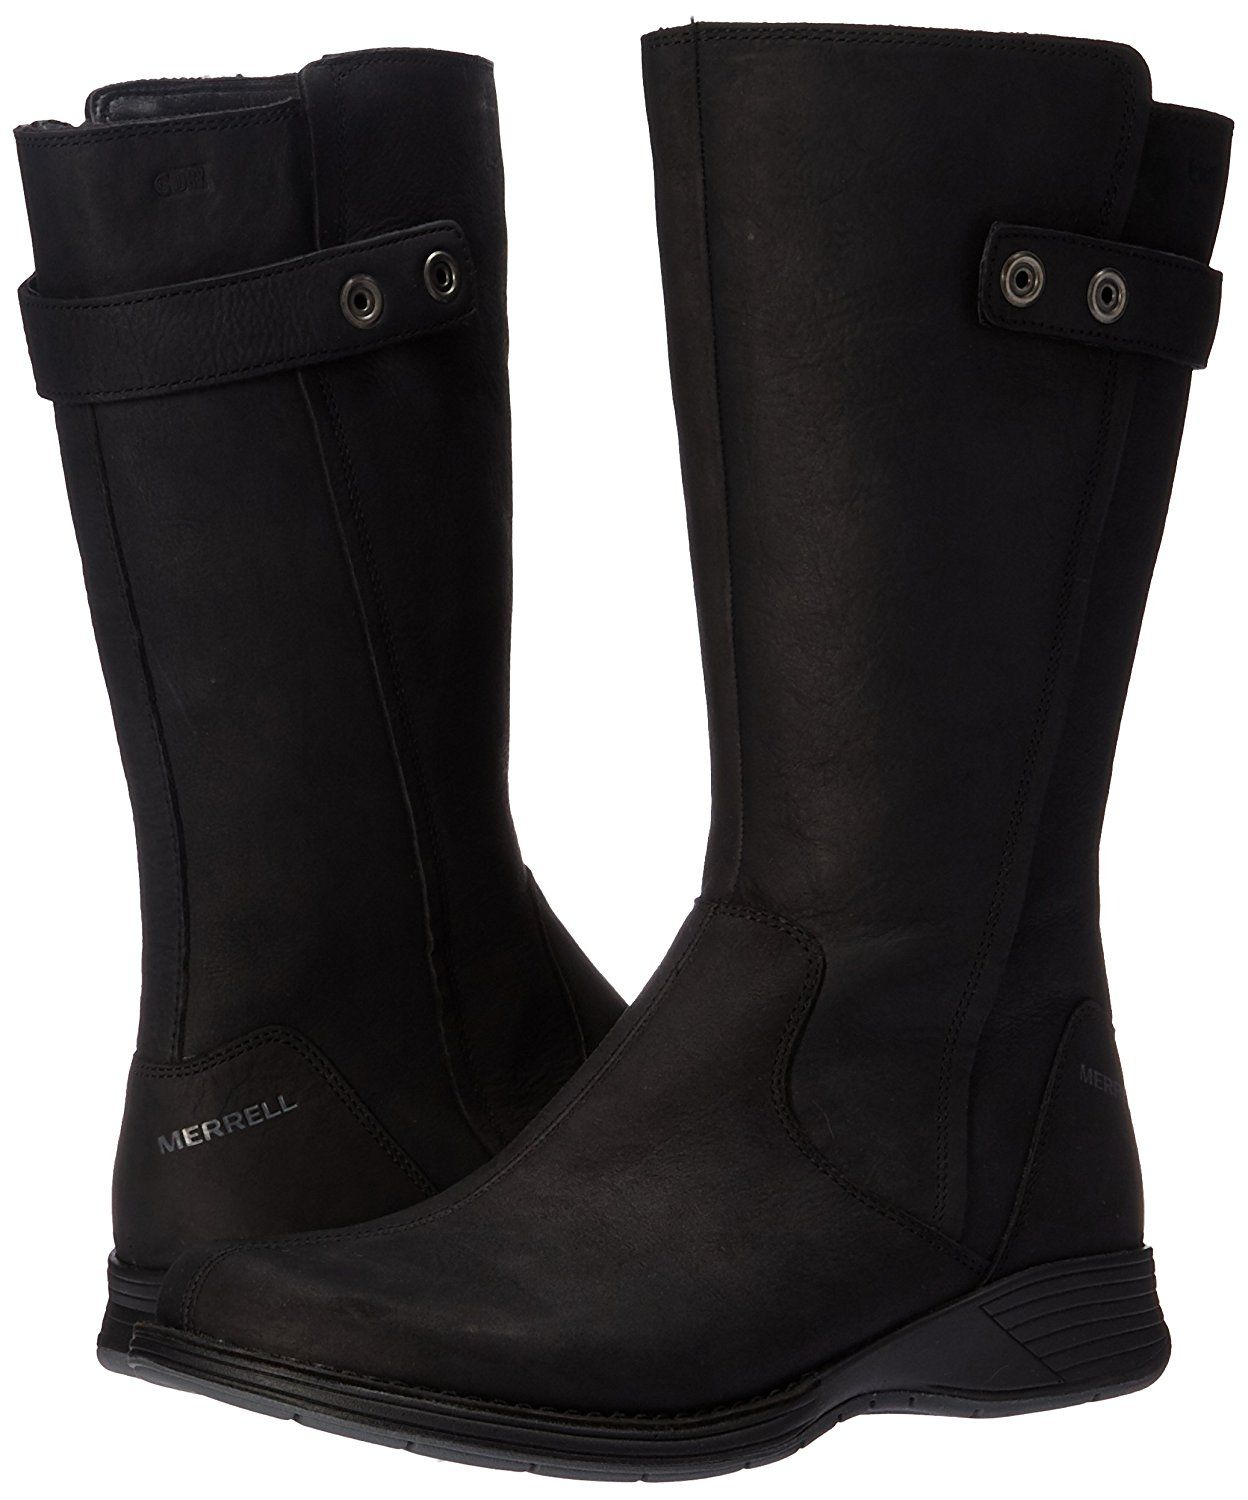 Boots, Waterproof snow boots